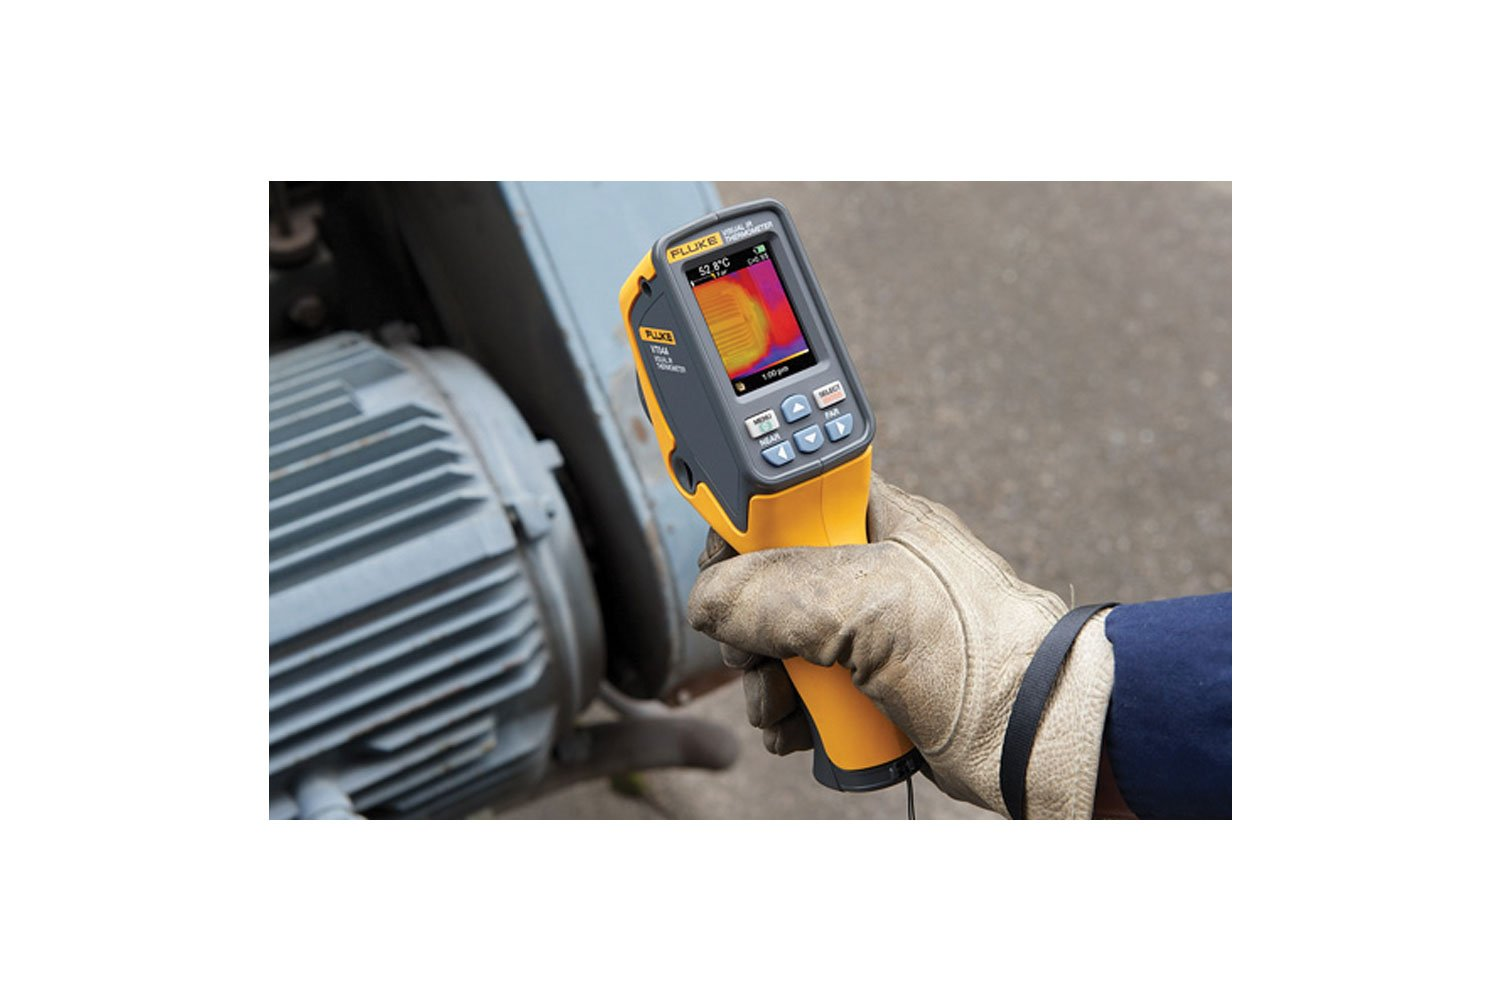 Fluke Vt04a Visual Ir Thermometer 52 Results For Ideal Circuit Breaker Finder Sale Classifieds